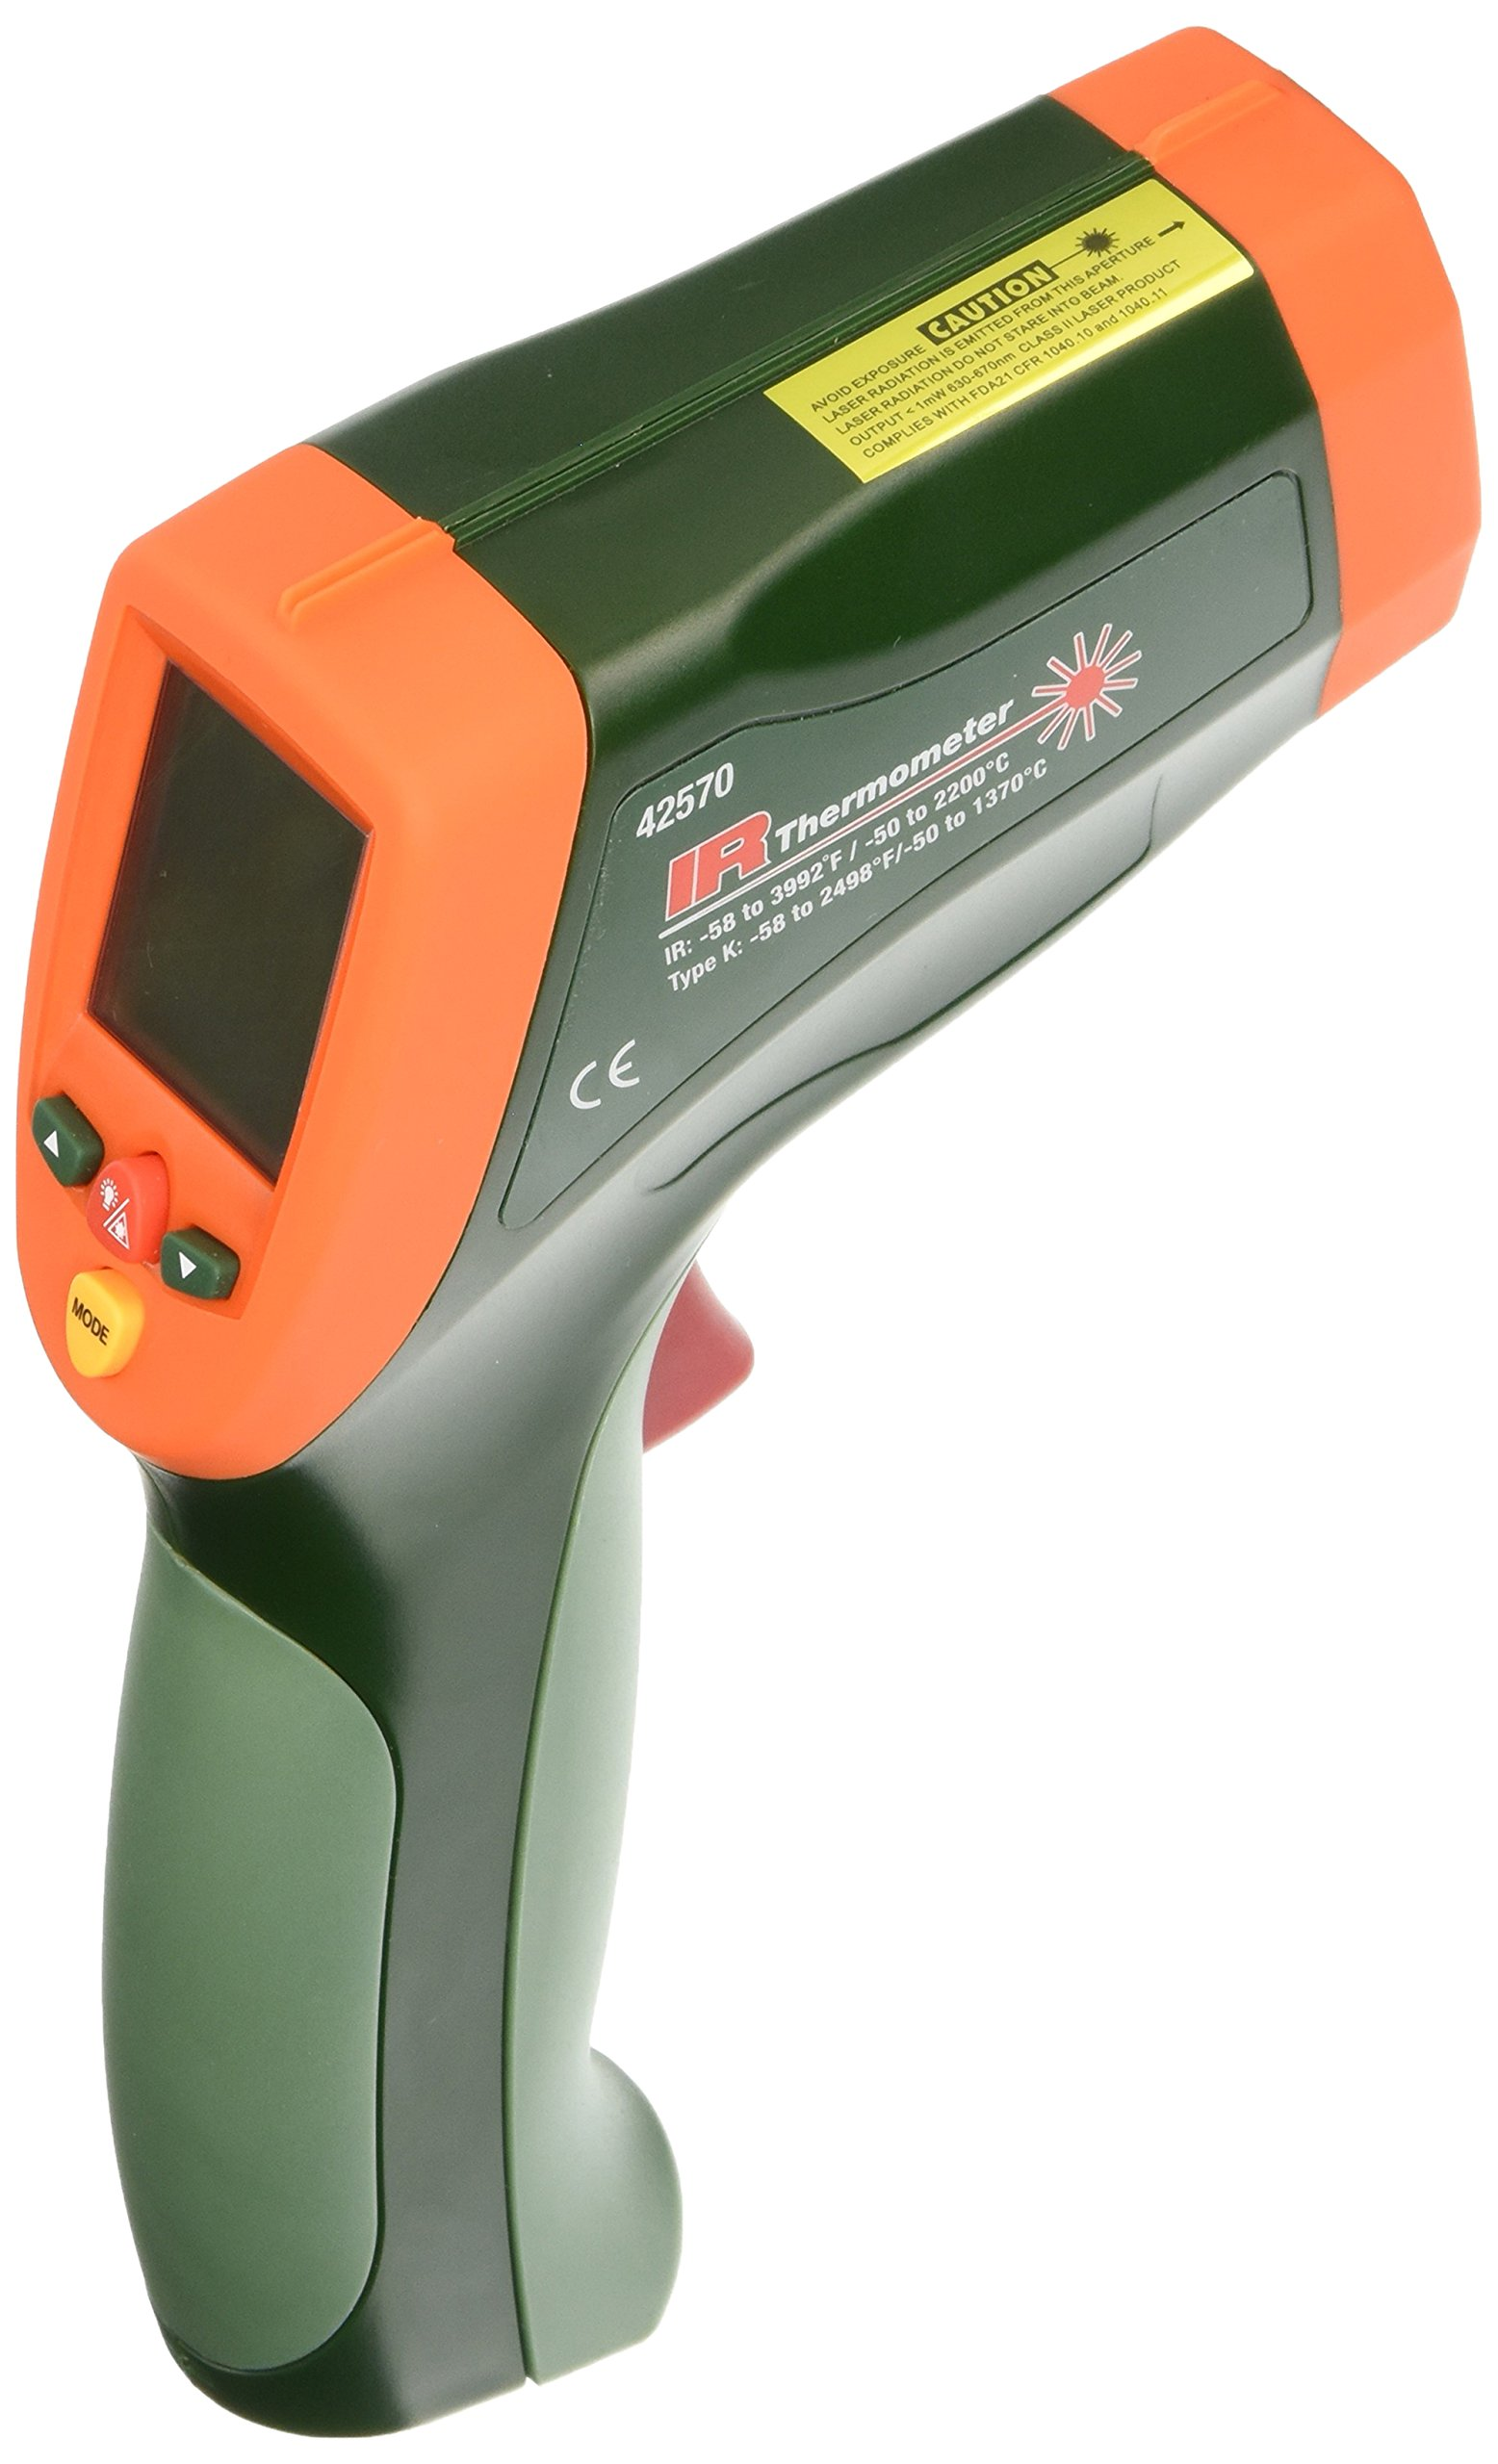 Extech 42570 Dual Laser Infrared Thermometer by Extech